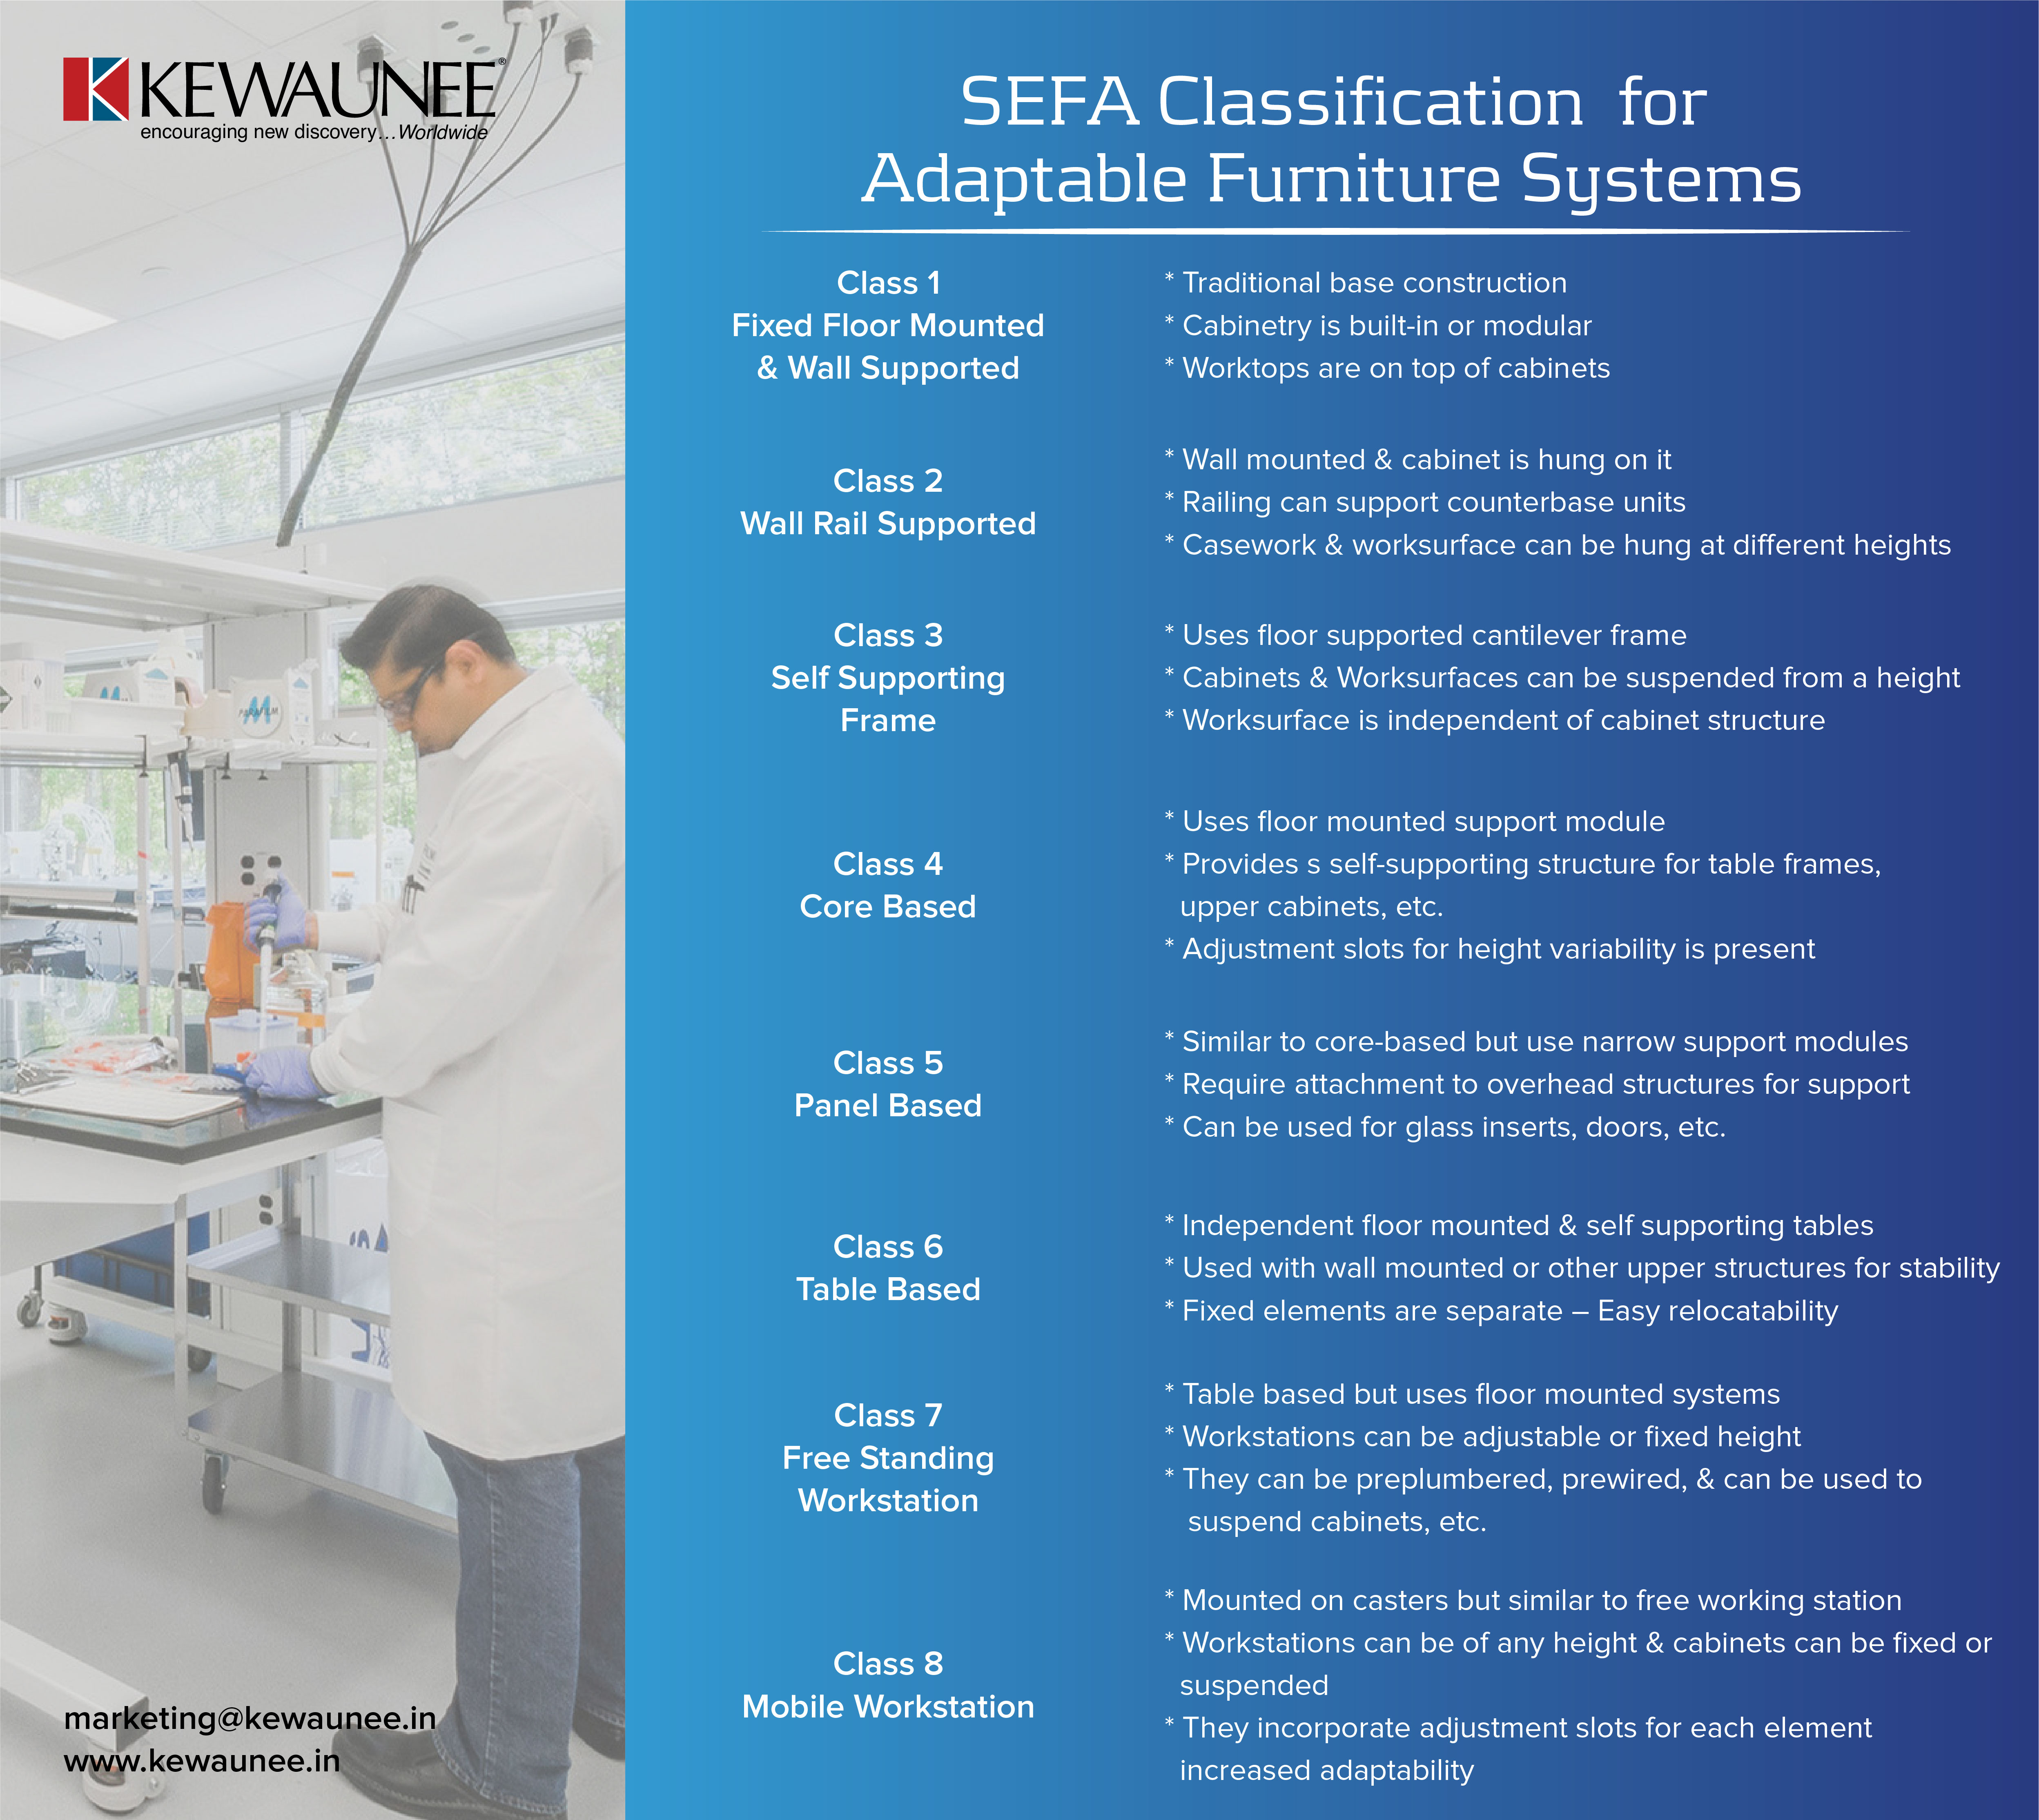 SEFA Classification for Adaptable Furniture Systems